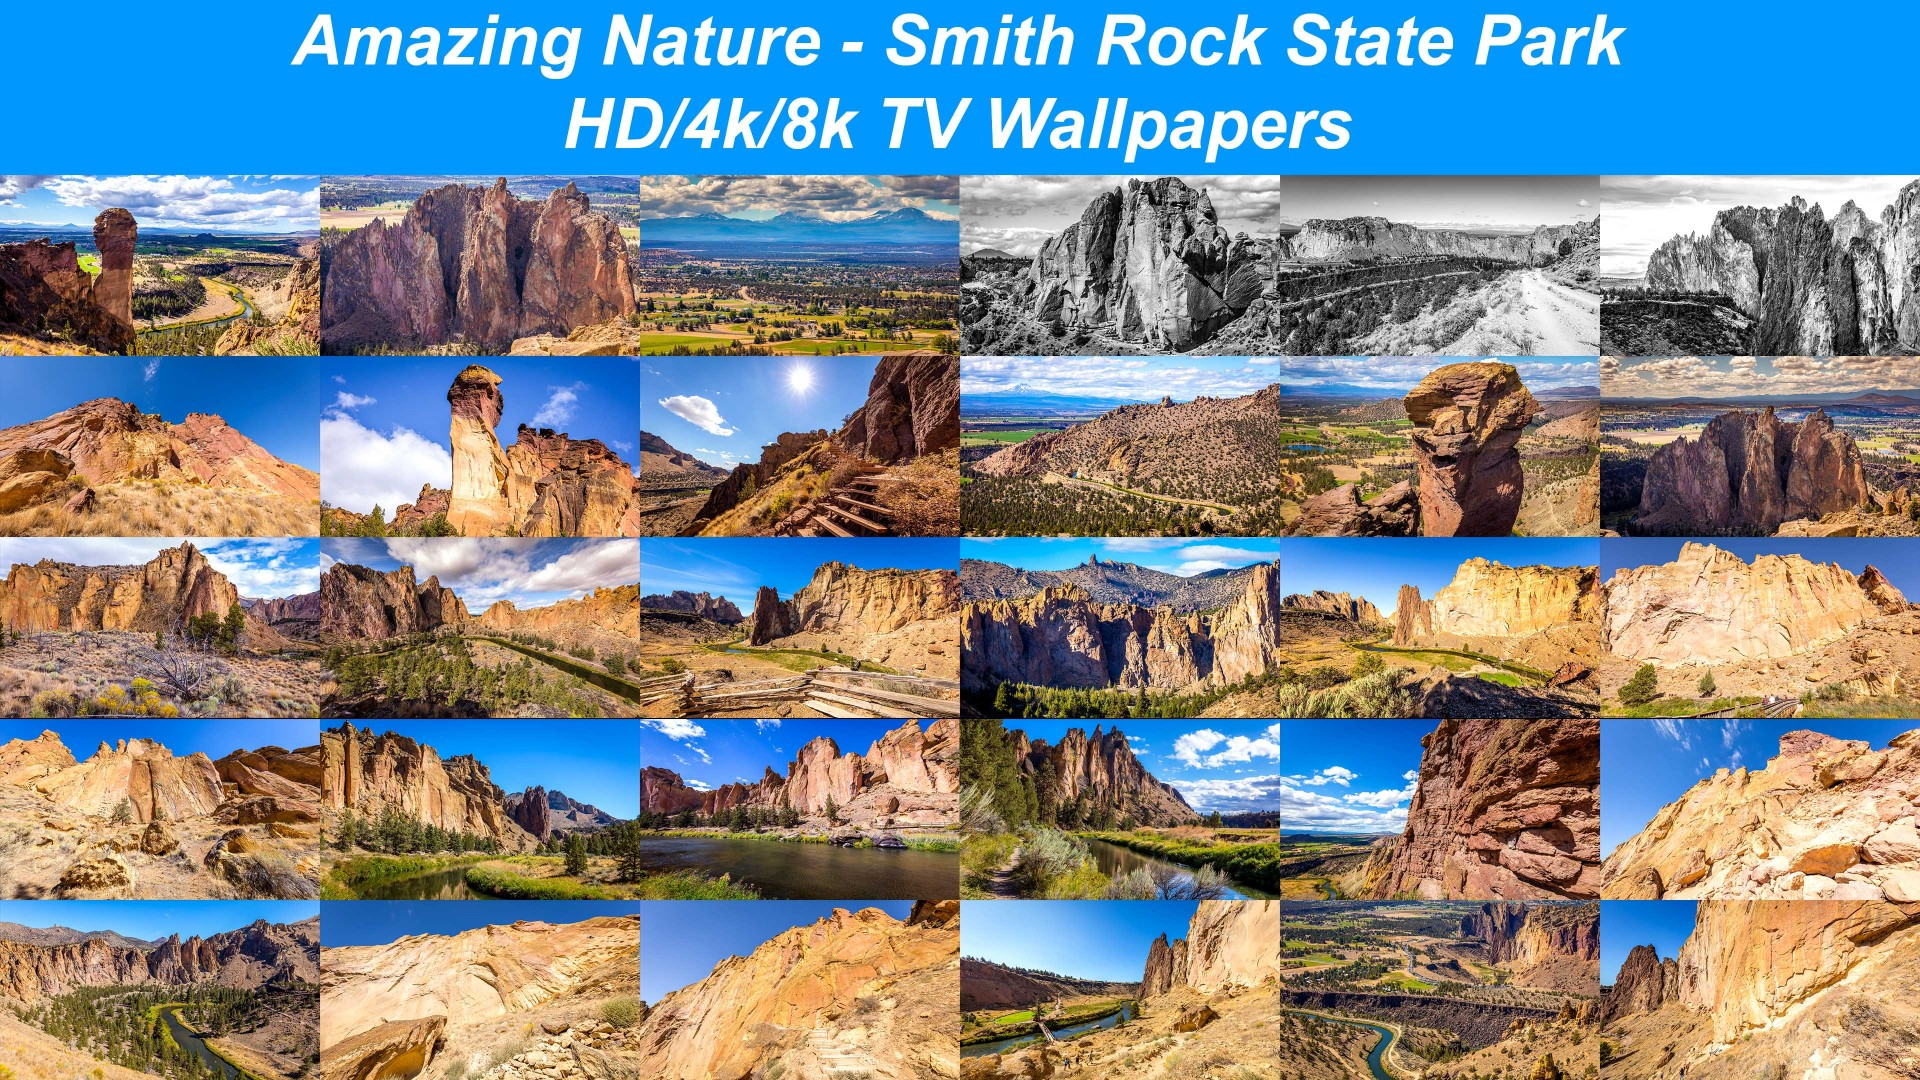 Amazing Nature 8k4khd Tv Screensaverswallpapers Smith Rock State Park Oregon